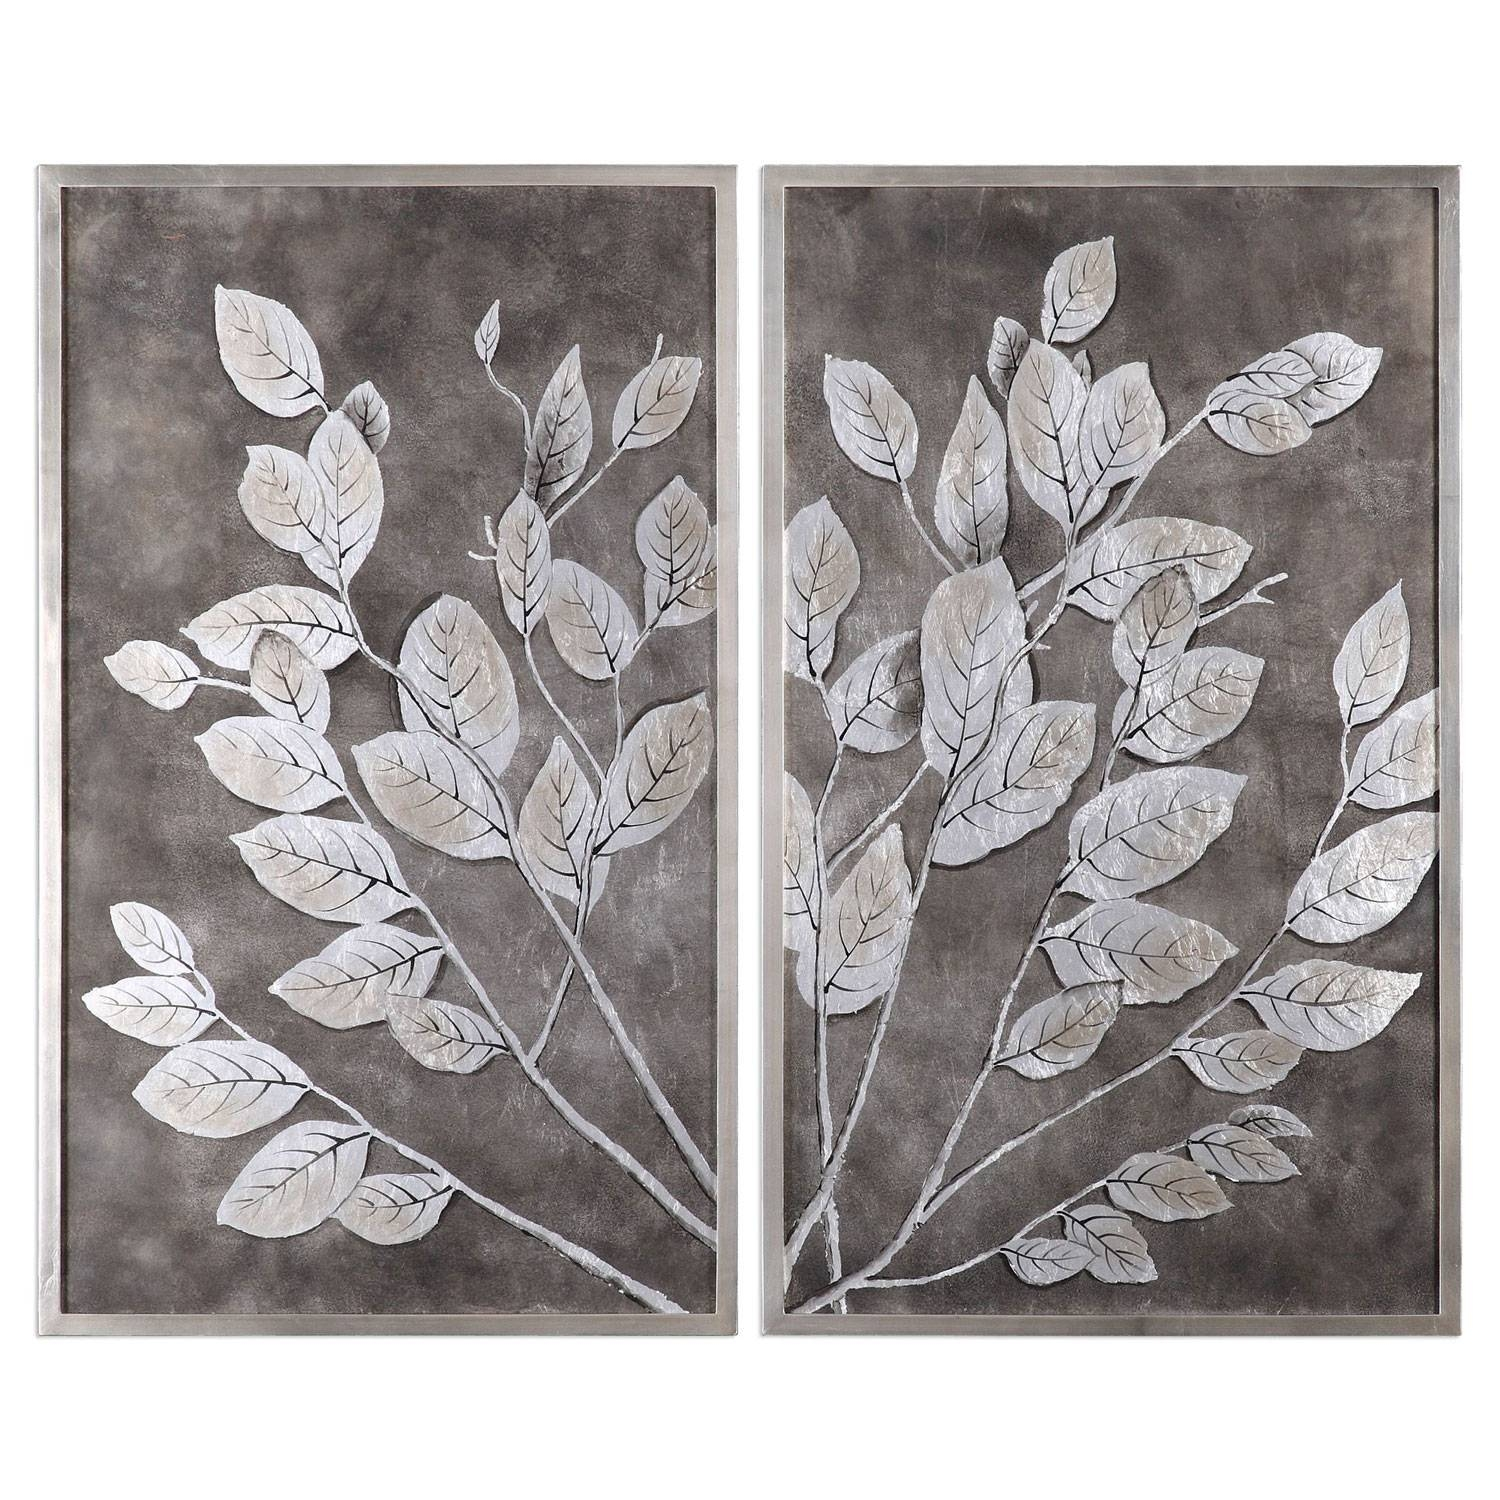 Money Tree Framed Art, Set Of 2 Uttermost Wall Art Wall Art Home Decor With Regard To Newest Black And White Wall Art Sets (View 12 of 20)